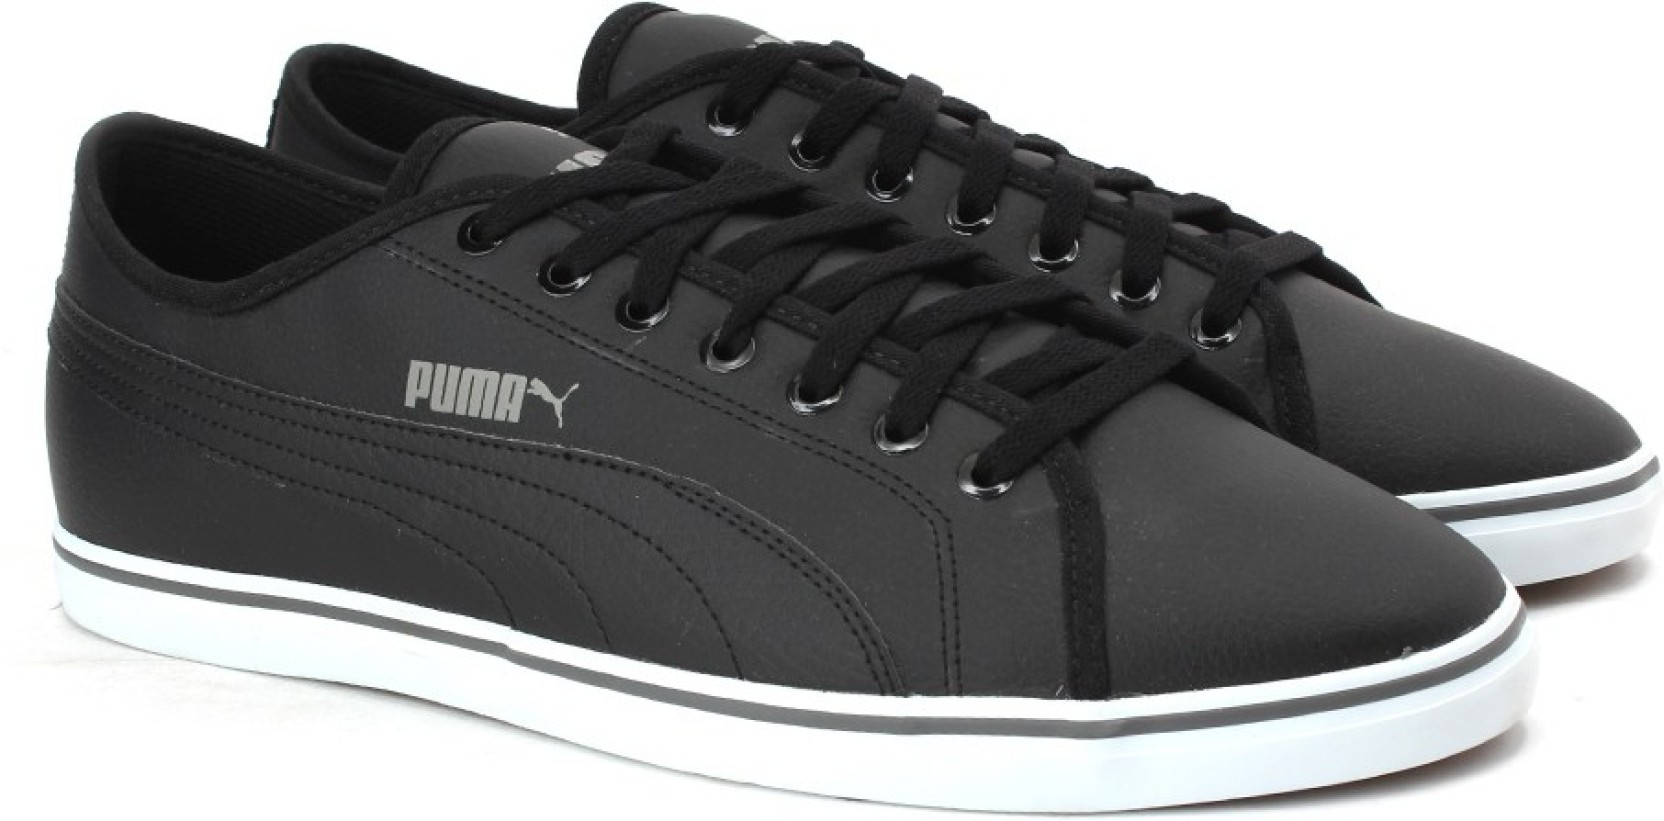 0401d9e28ad Puma Elsu v2 SL DP Sneakers For Men - Buy black-steel gray Color ...